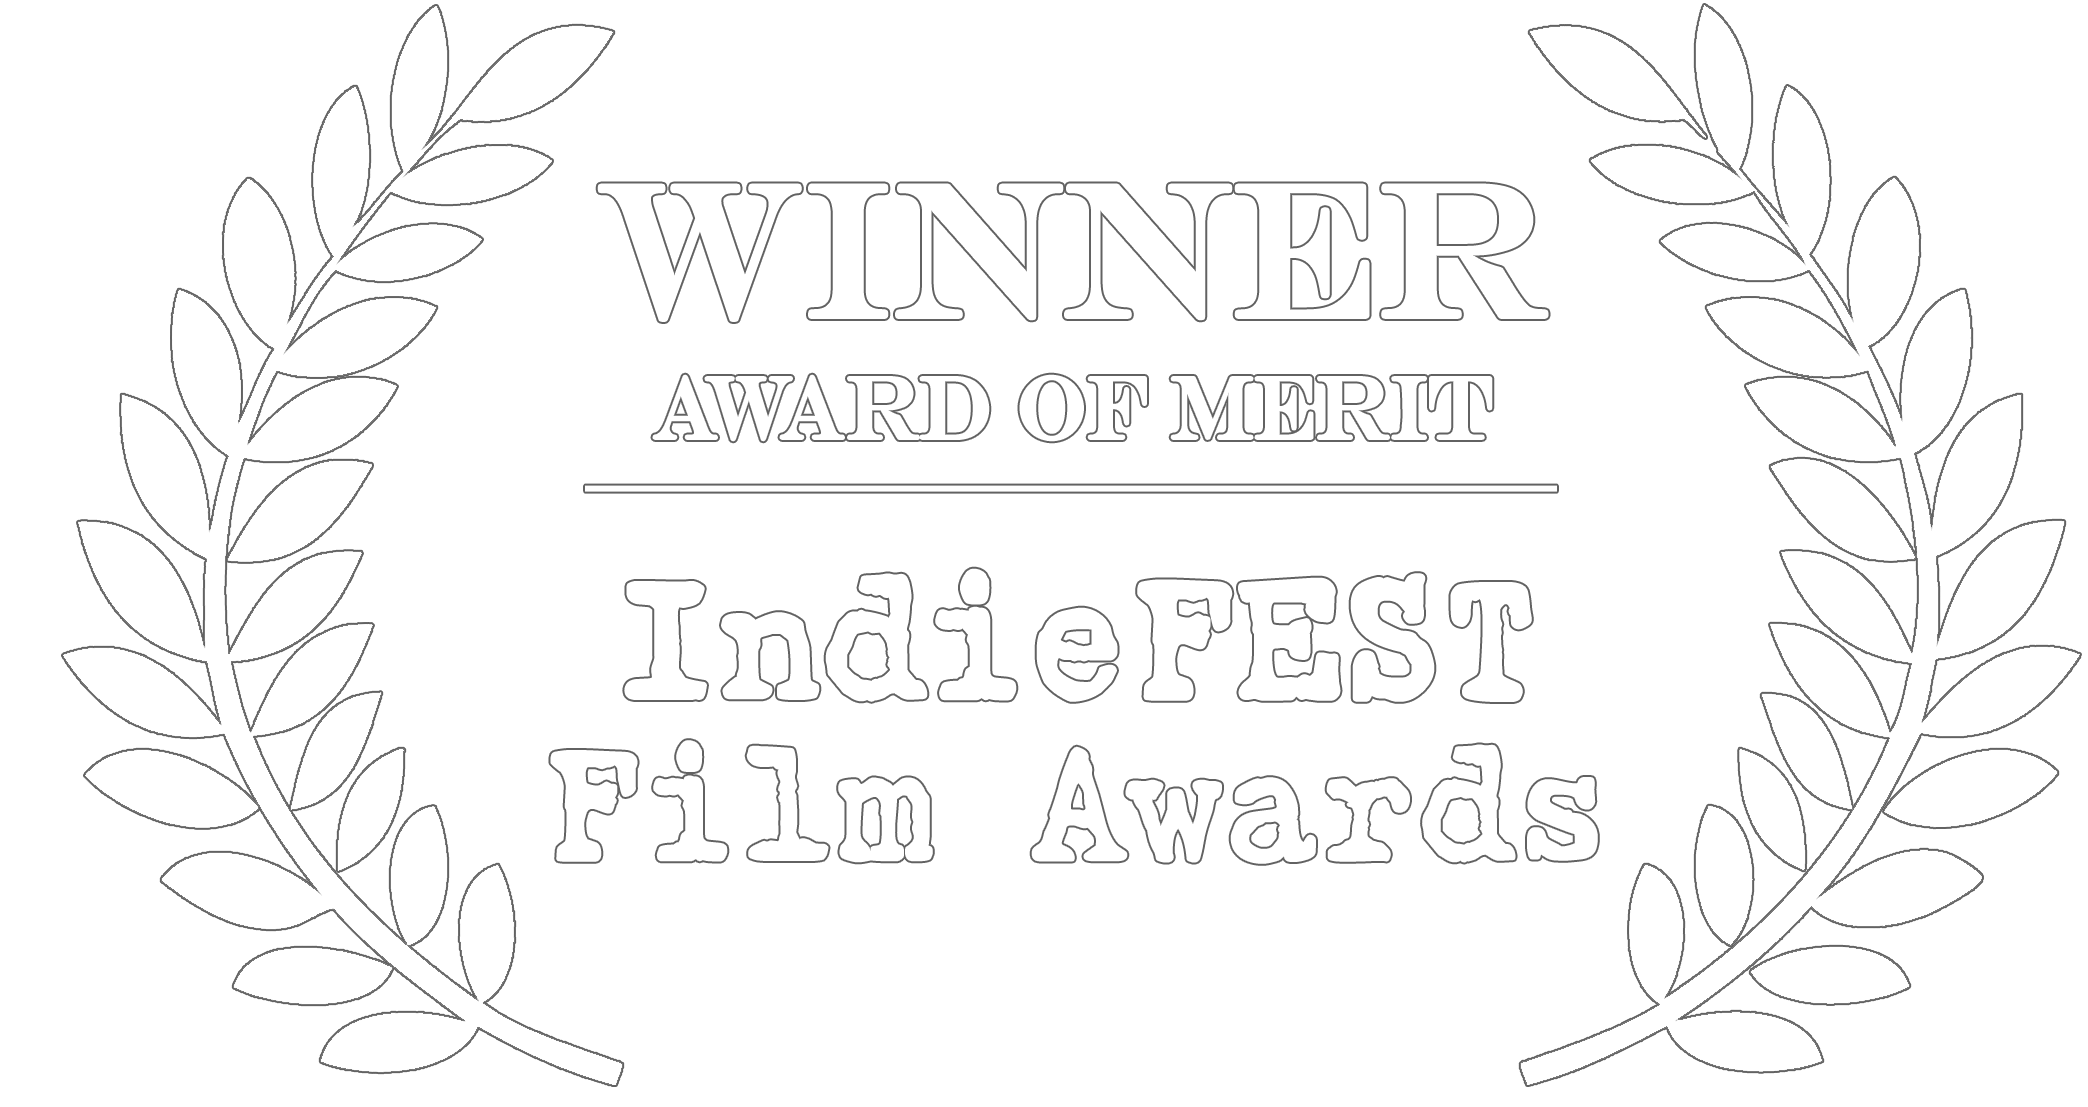 Testimony Wins in IndieFEST Film Awards